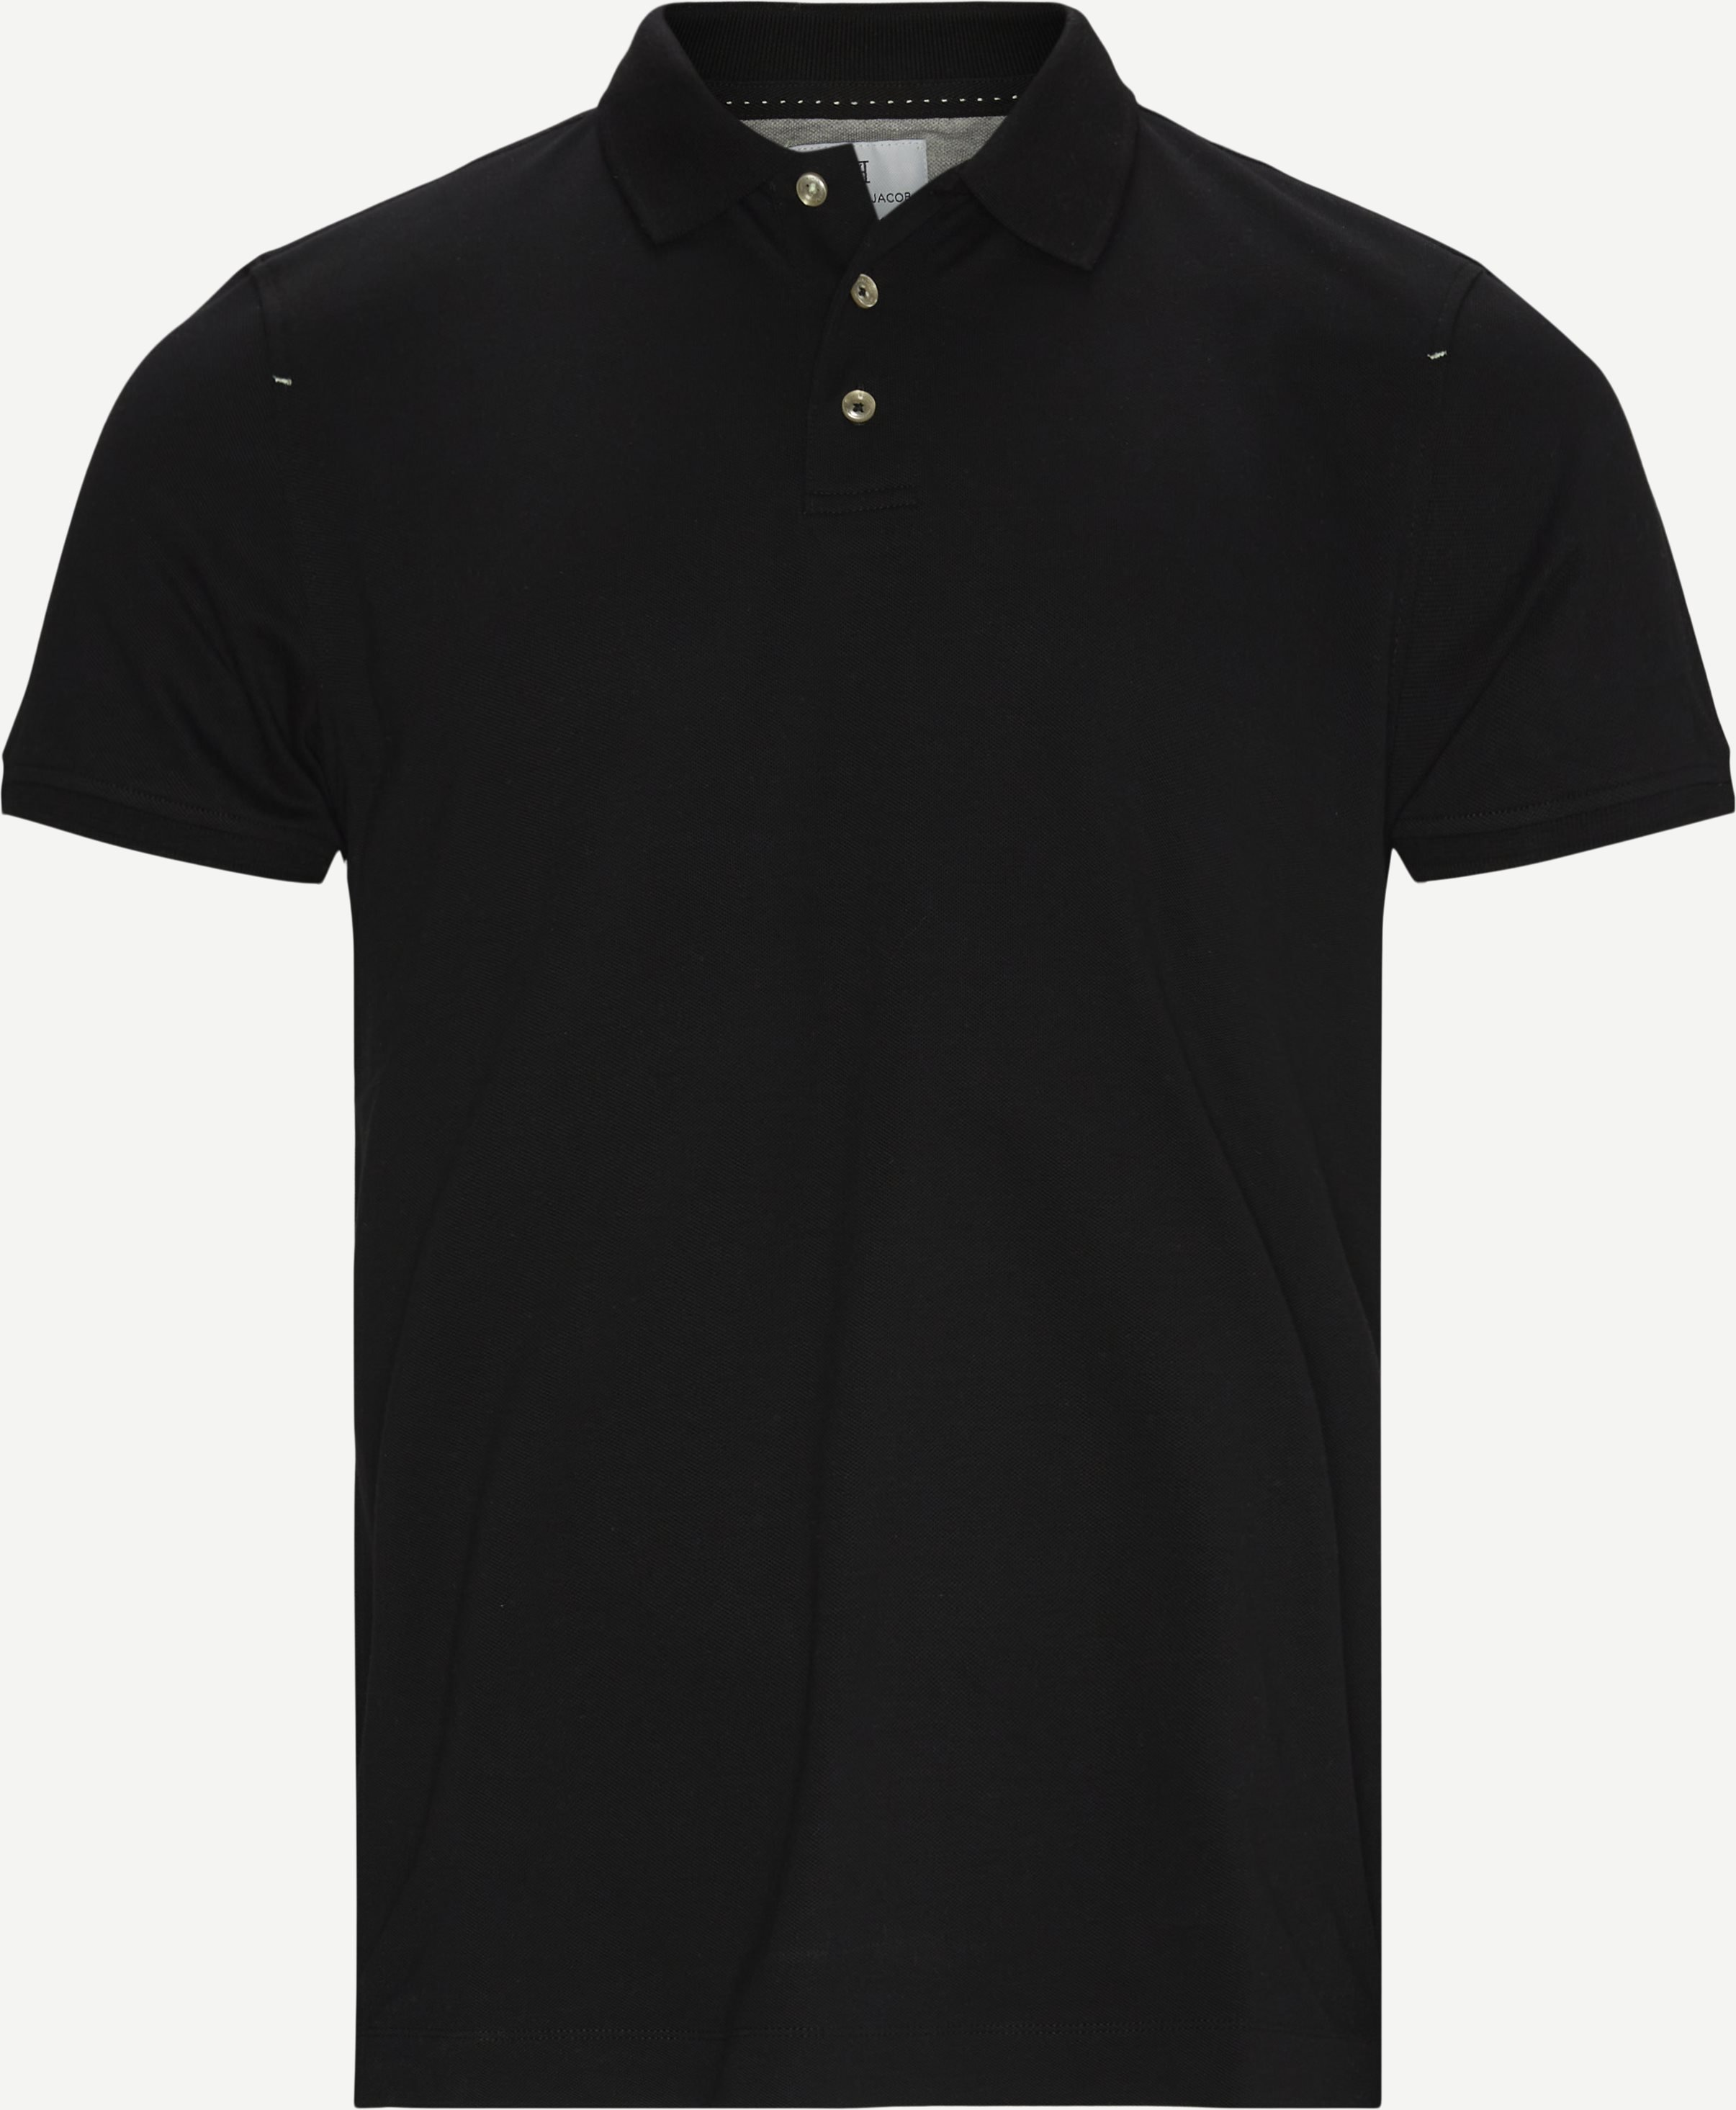 Pique Stretch Polo - T-shirts - Modern fit - Sort